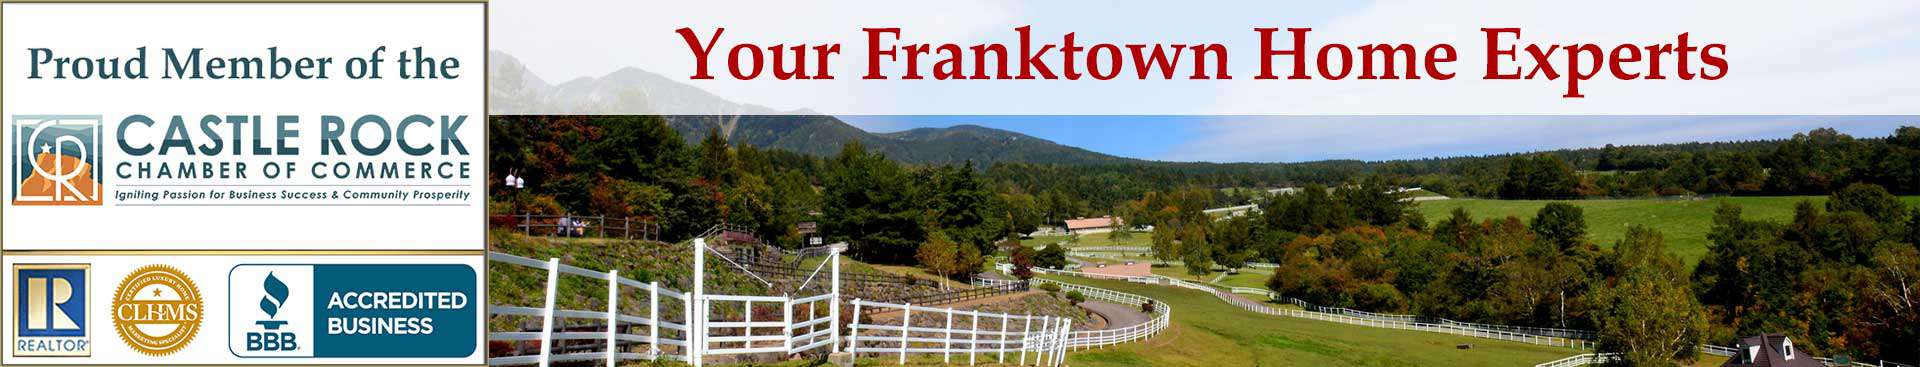 Franktown CO Organizational Banner